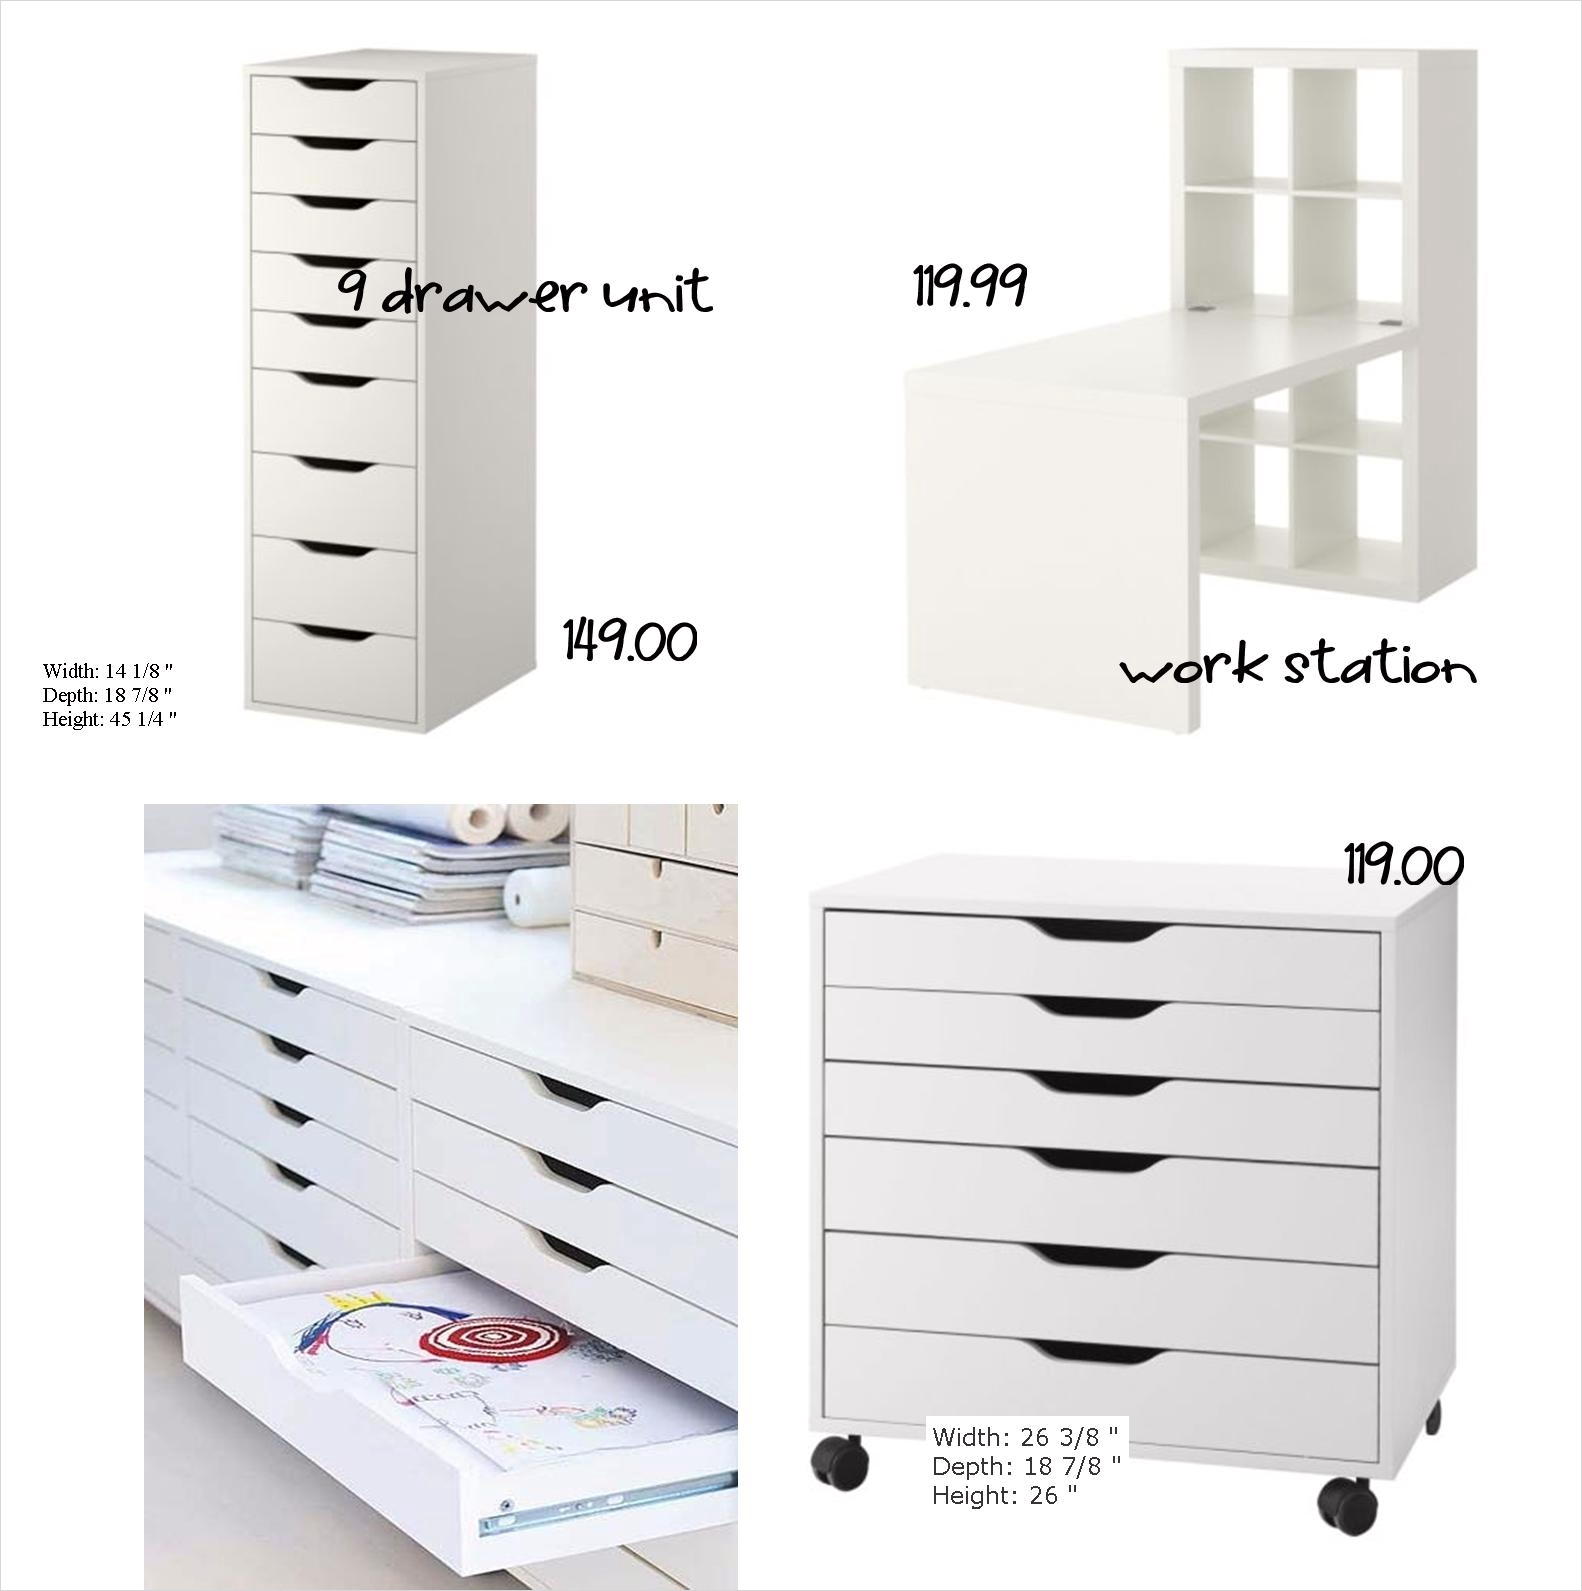 41 Inexpensive Ikea Scrapbook Room for Storage Ideas 99 It S Written On the Wall Craft Room organizing Store Over 8